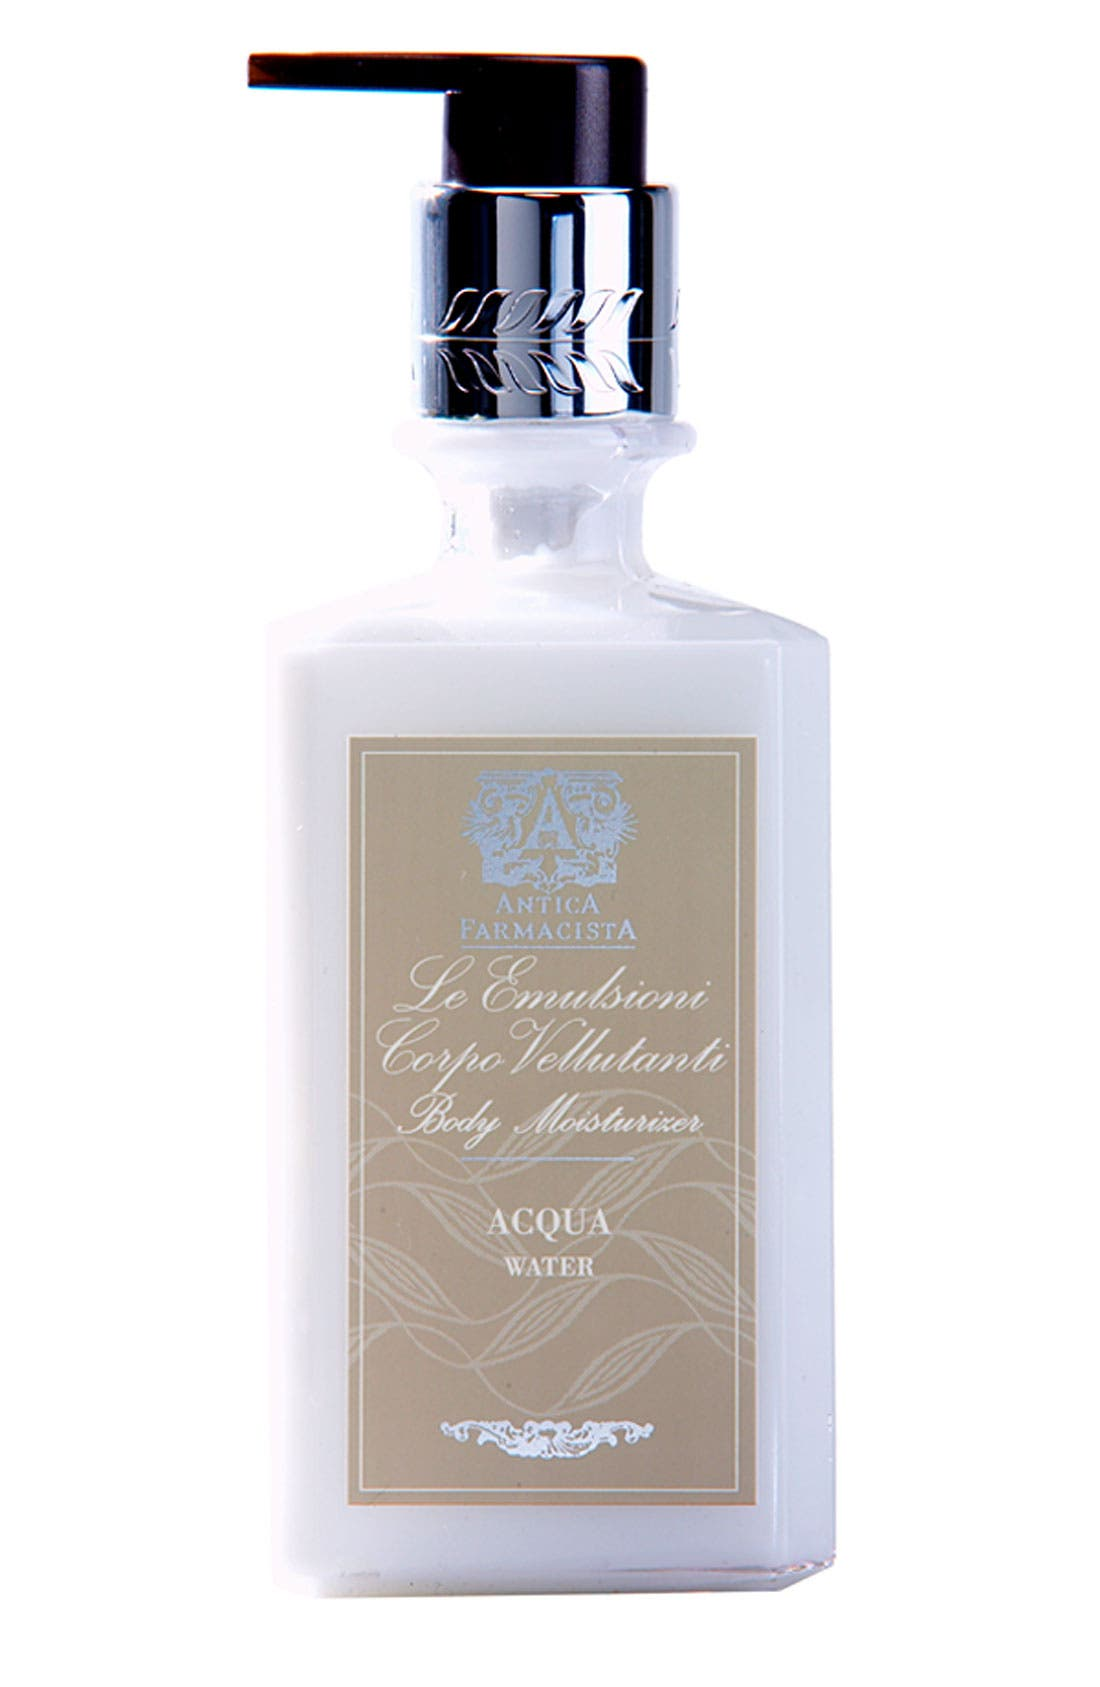 Antica Farmacista 'Acqua' Body Moisturizer